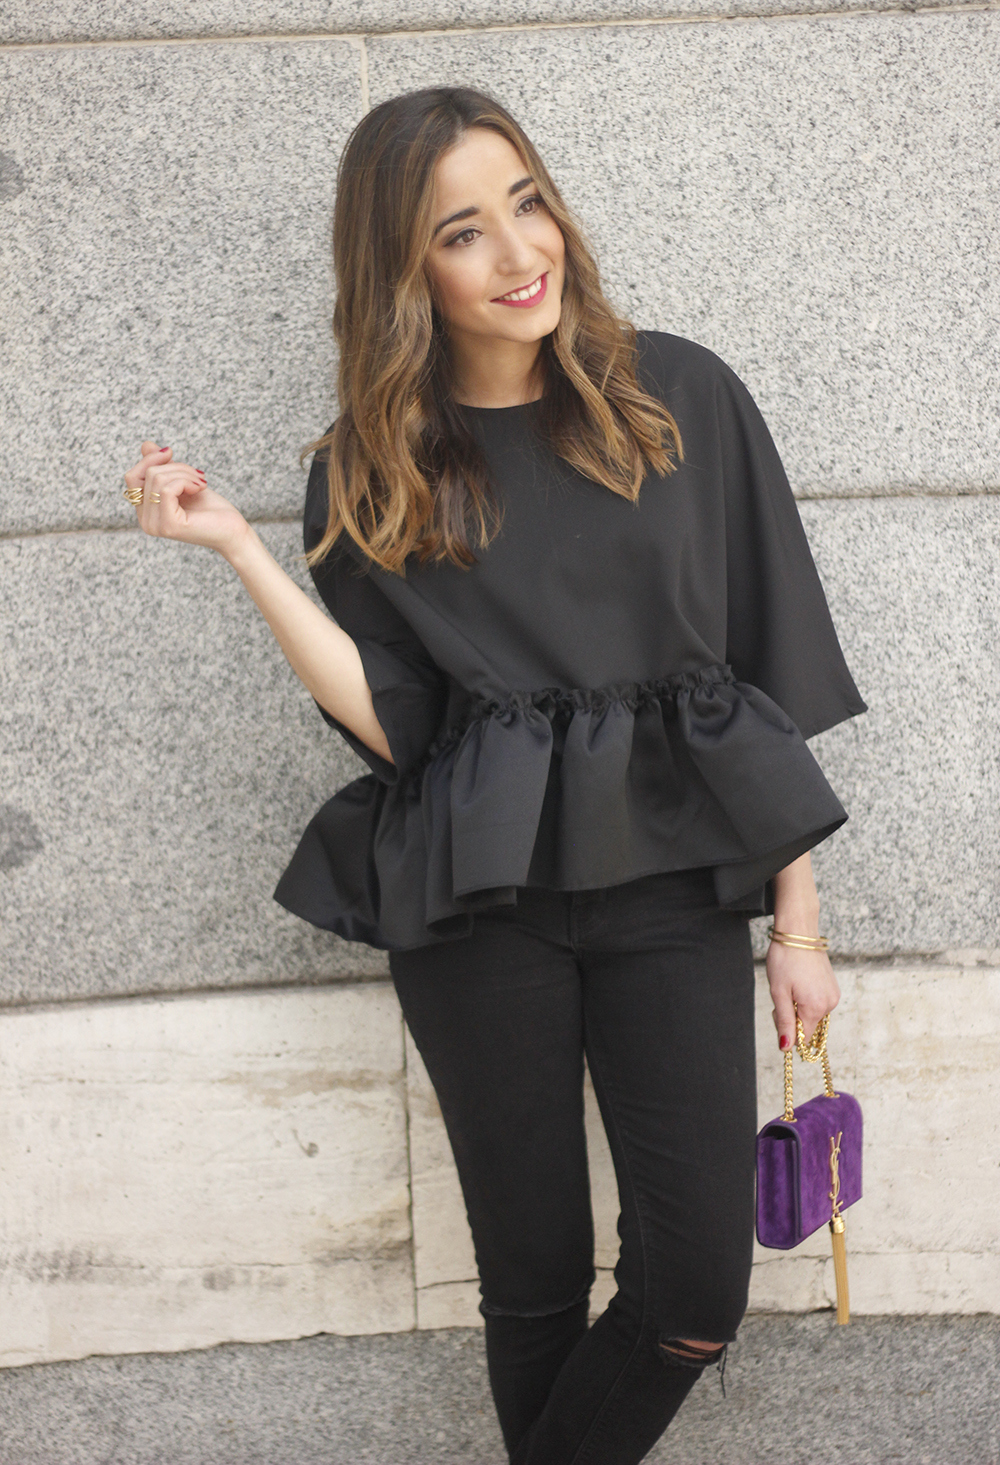 black top with a ruffle Carolina Herrera Sandals YSL bag accessories outfit style22